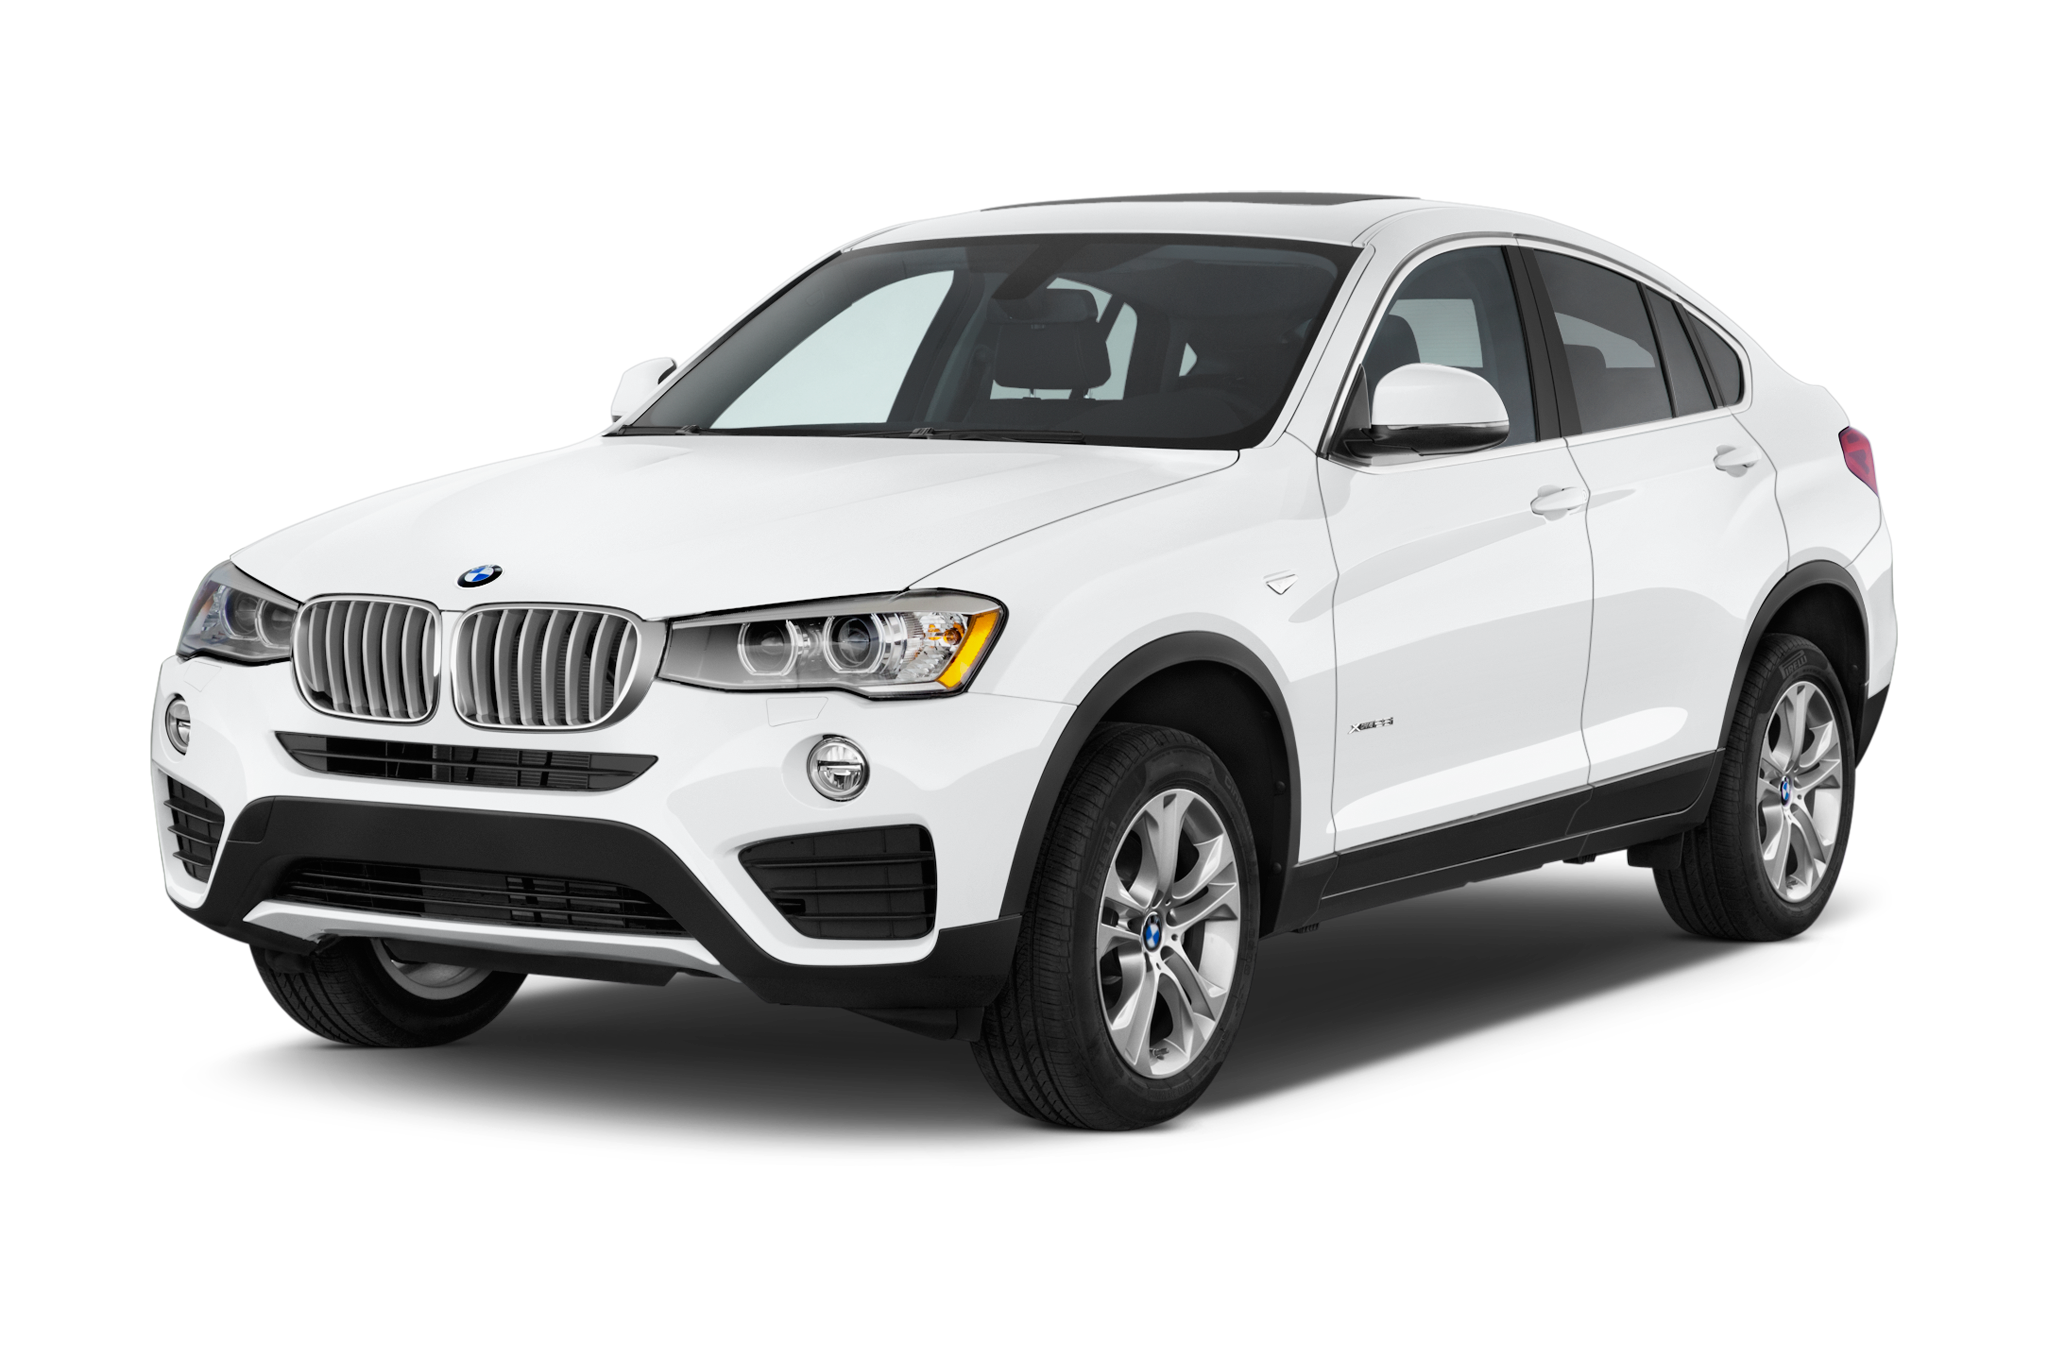 BMW X4 series F26 (14-) xDrive